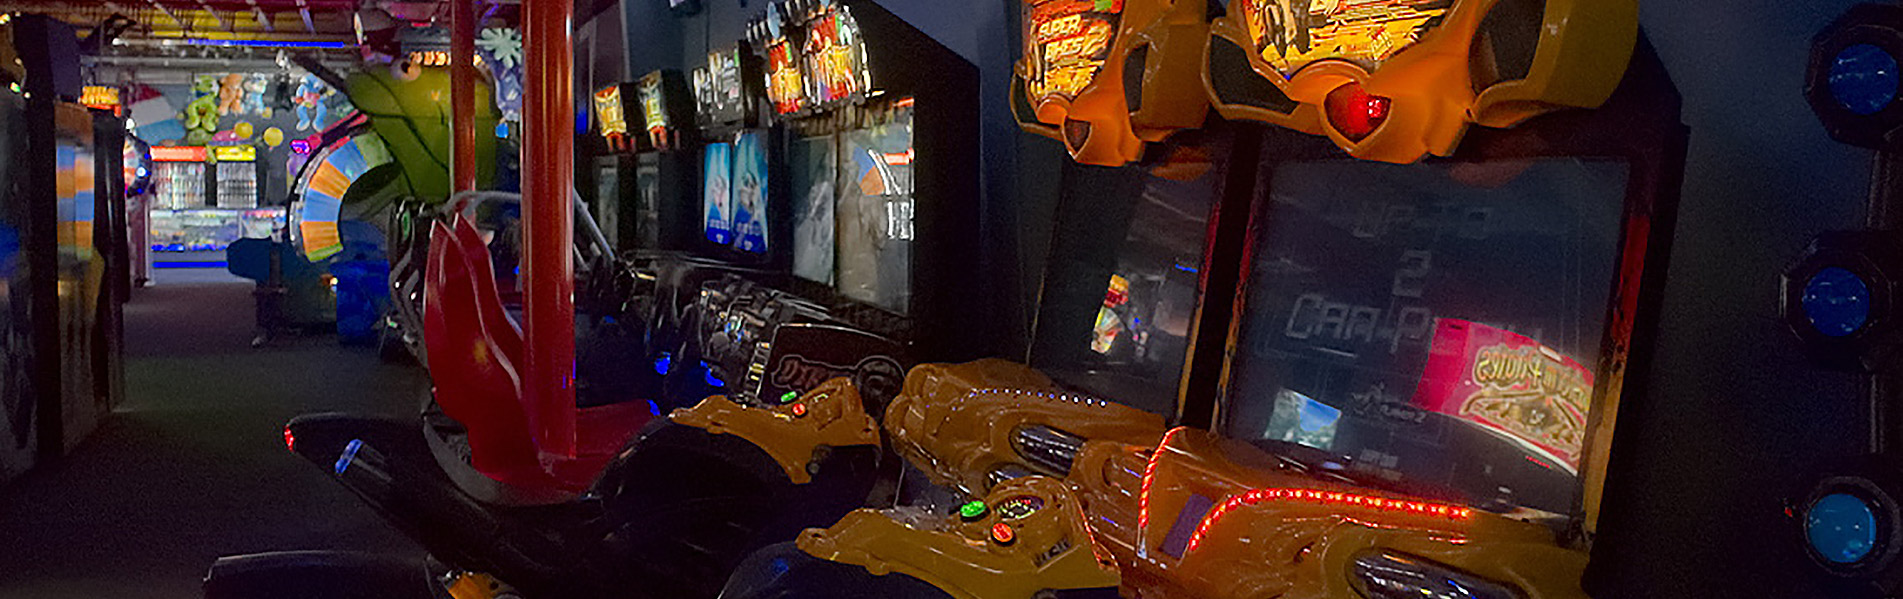 Game Arcade Melbourne Florida